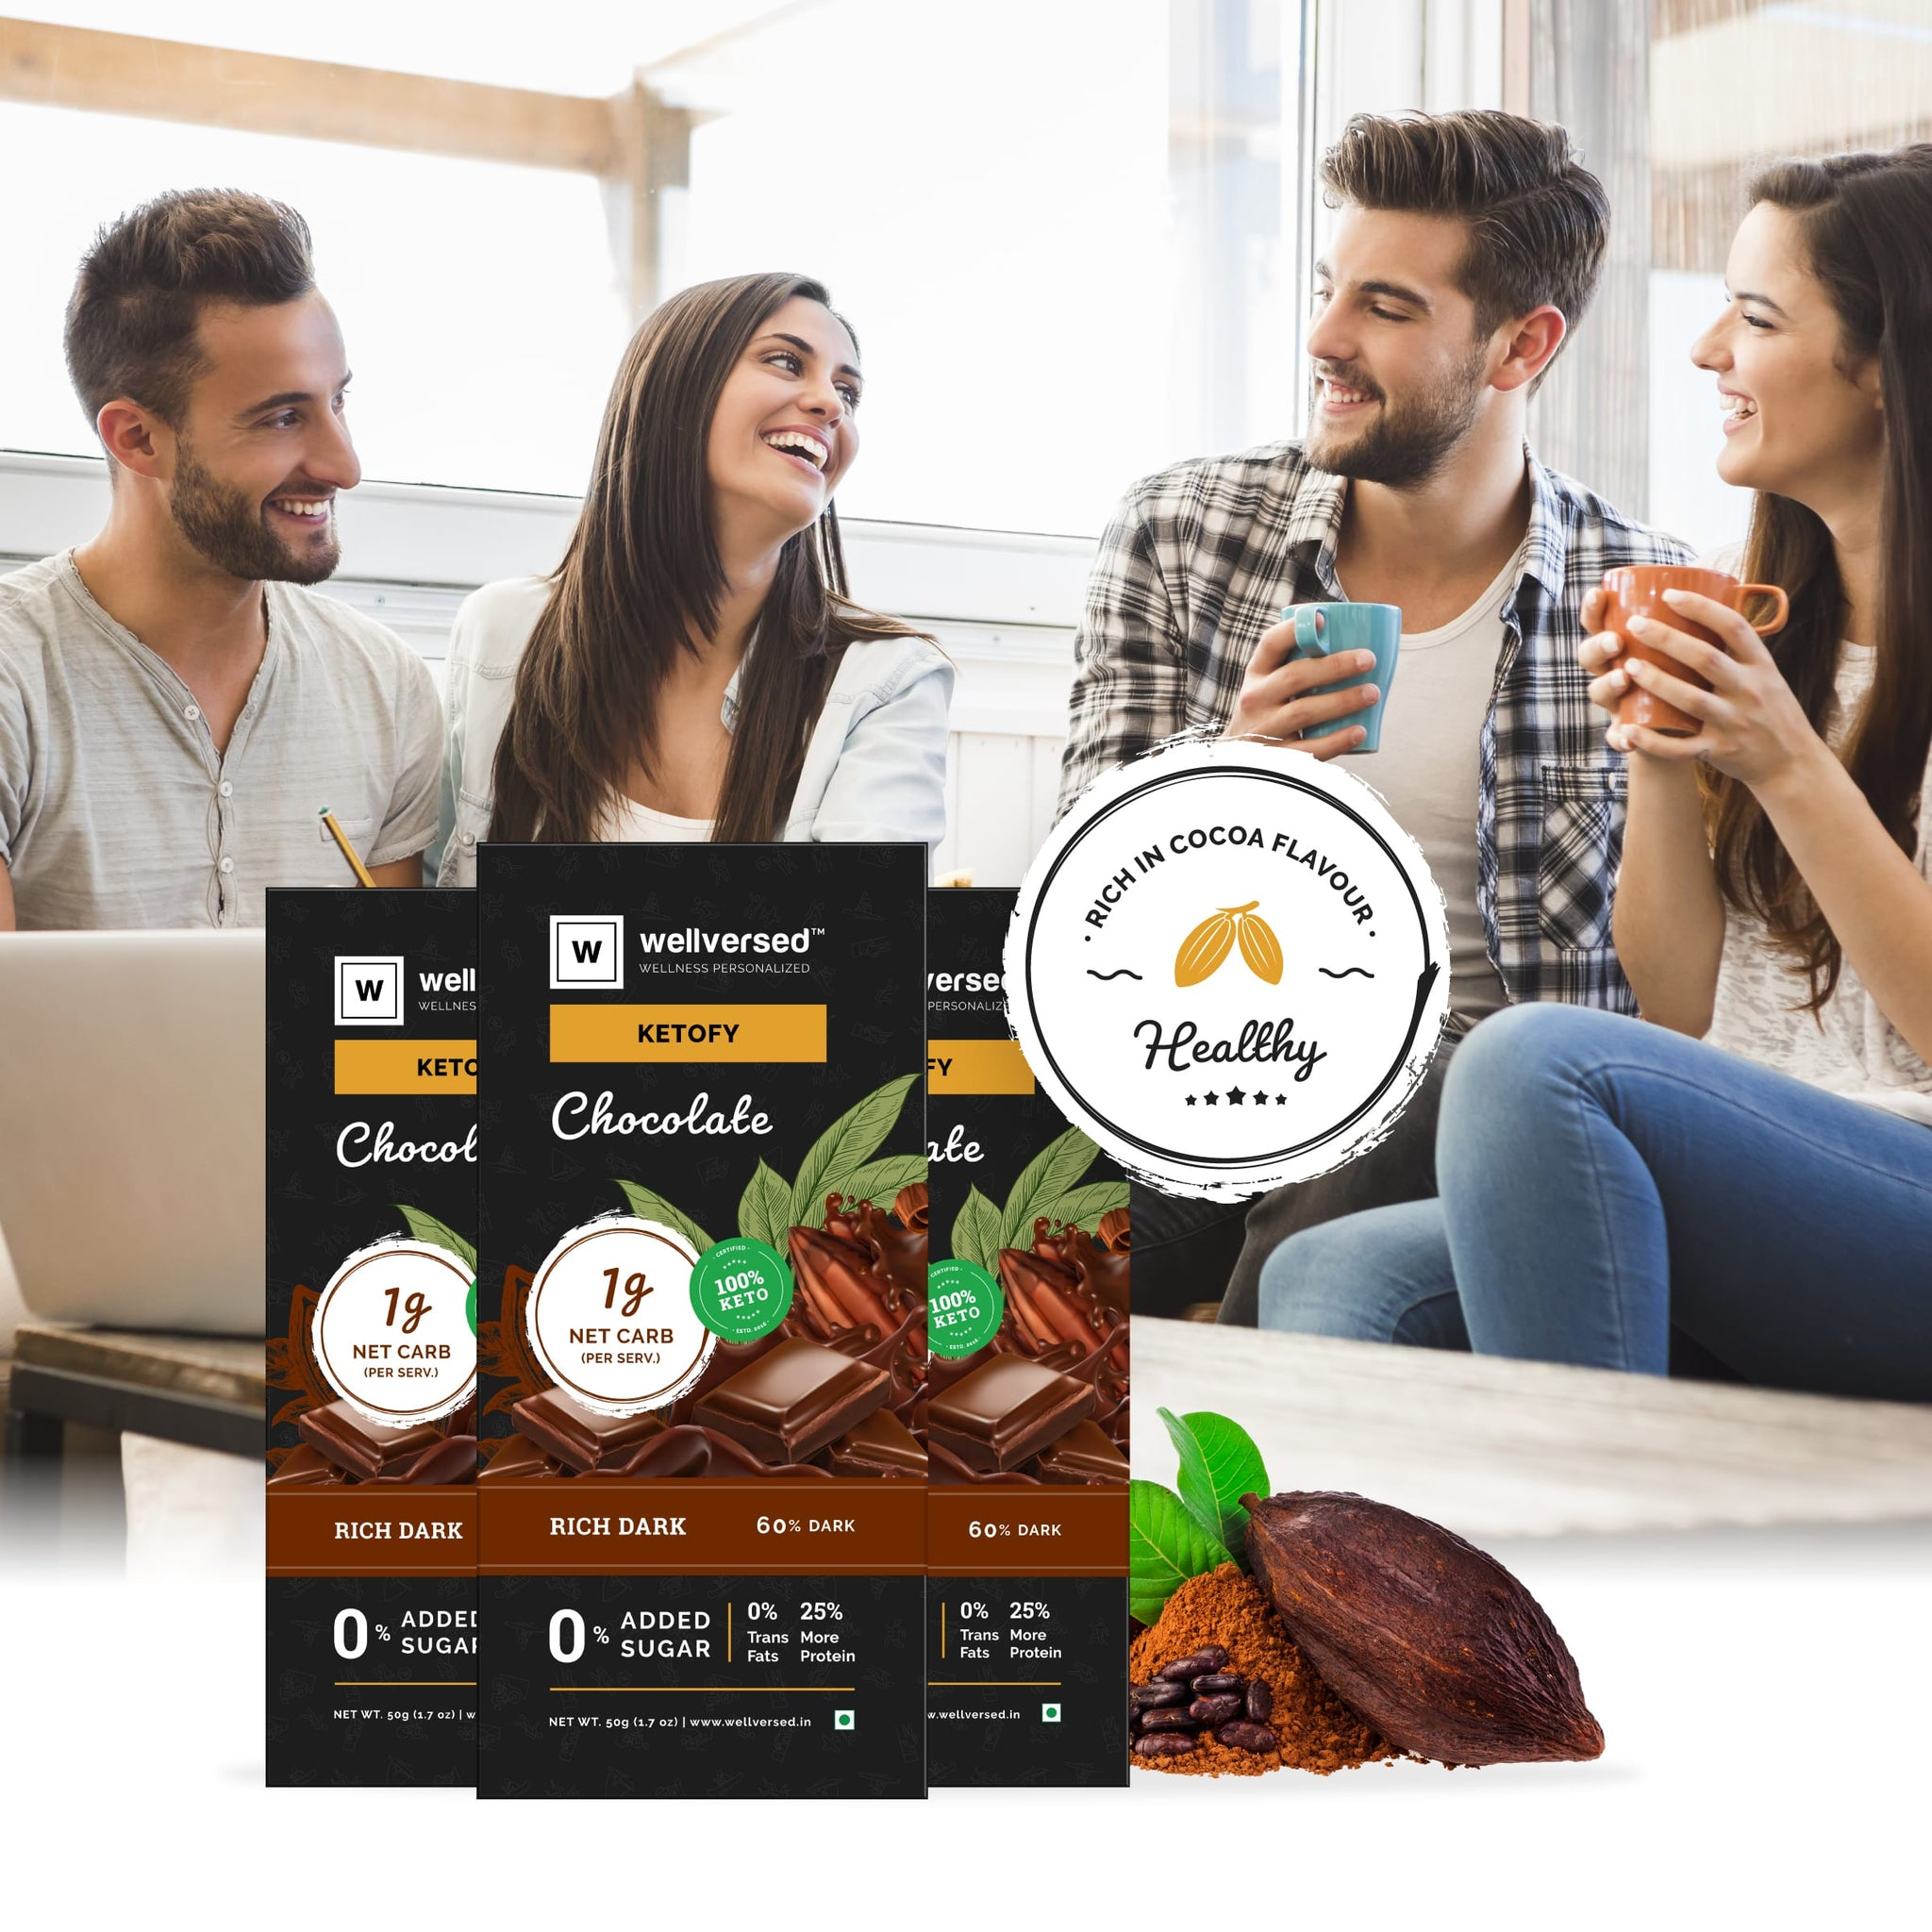 Ketofy - Dark Keto Chocolate | Sugar Free